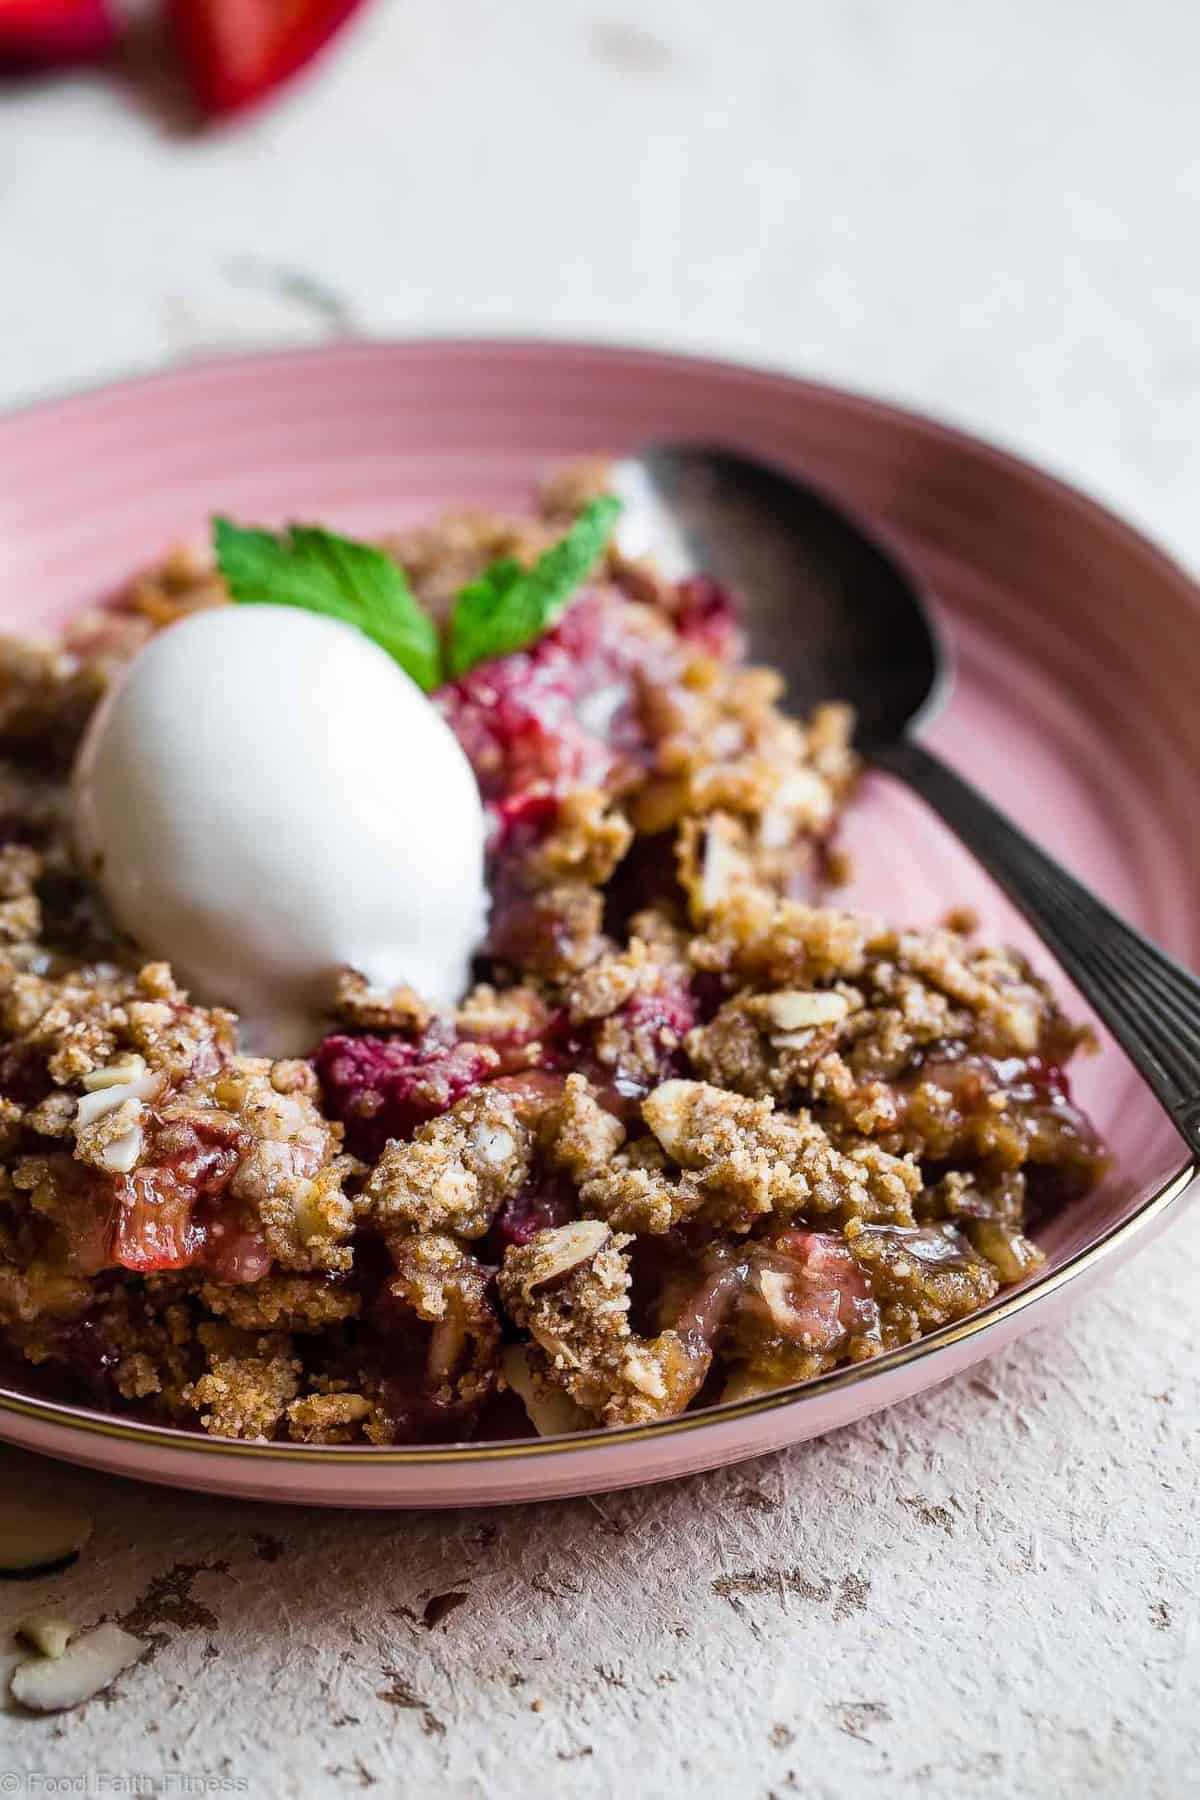 Easy Gluten Free Strawberry Rhubarb Crisp  This Healthier Strawberry